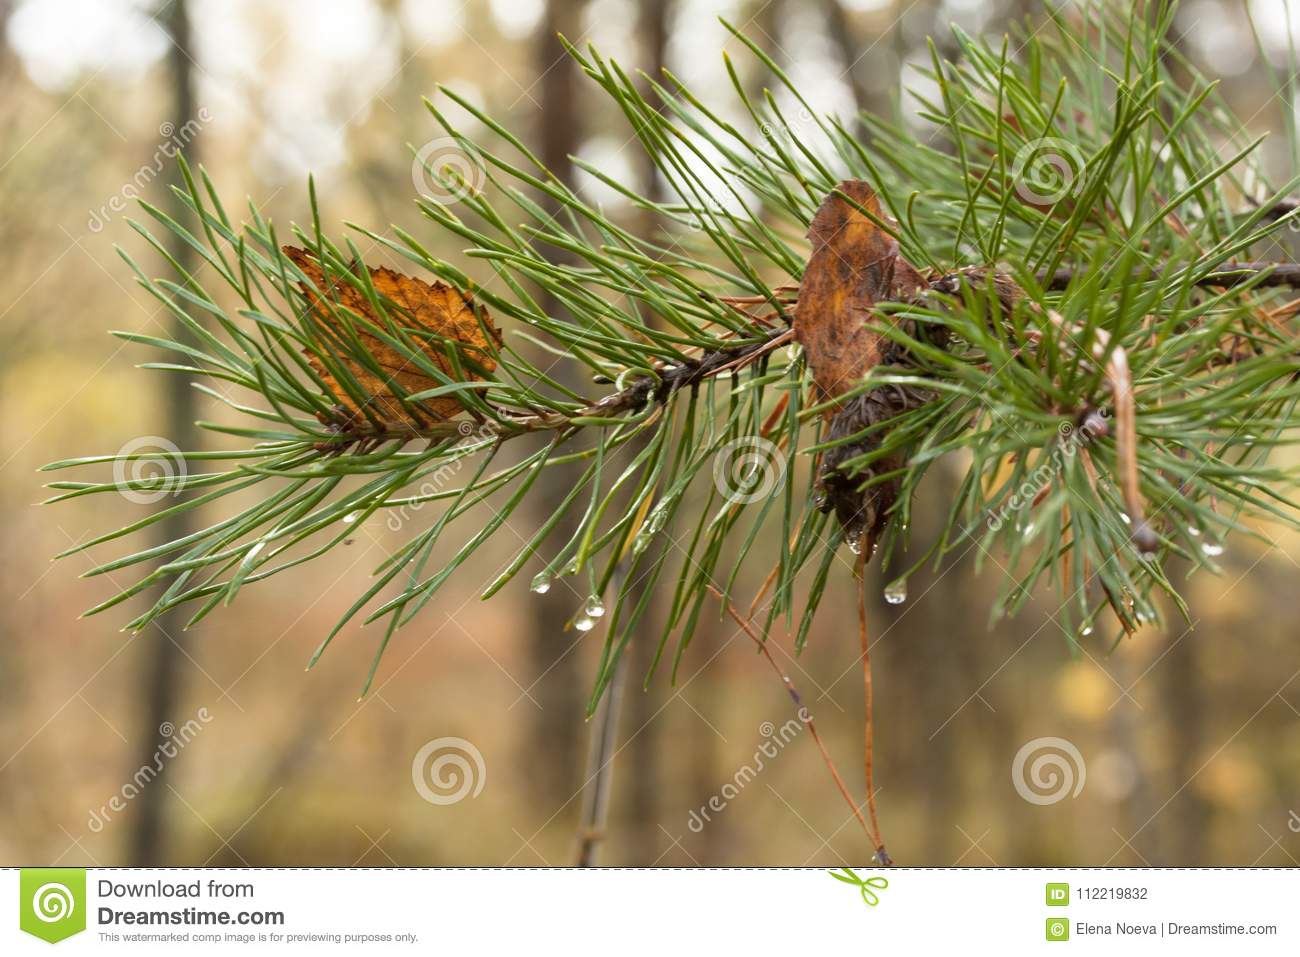 Green coniferous branch with drops of water and brown leaves close-up.